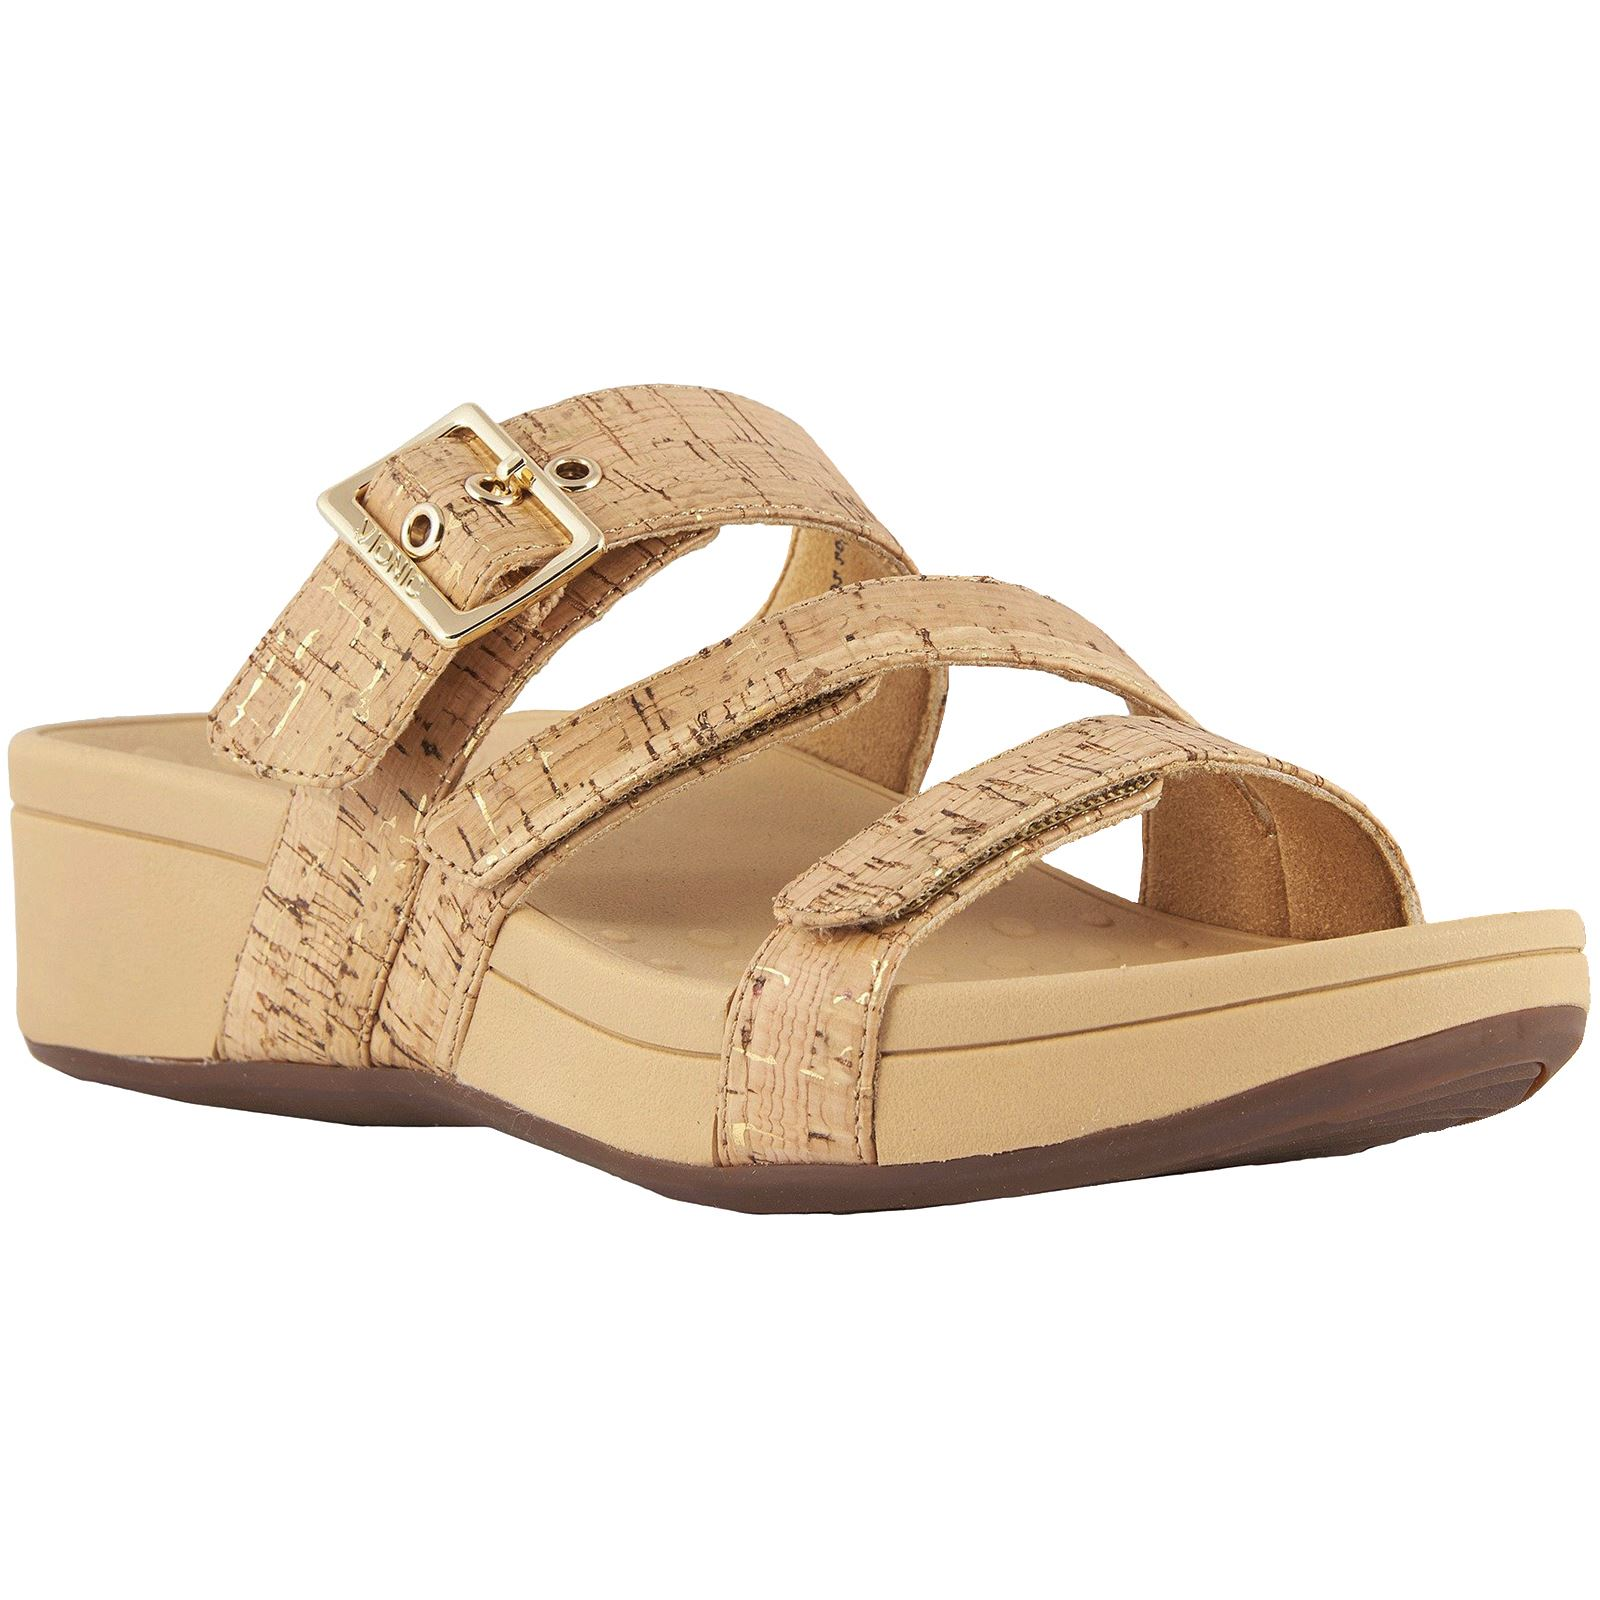 b28ce36487 Details about Vionic Pacific Rio Gold Cork Womens Cork Wedge Slip-On  Open-back Slide Sandals